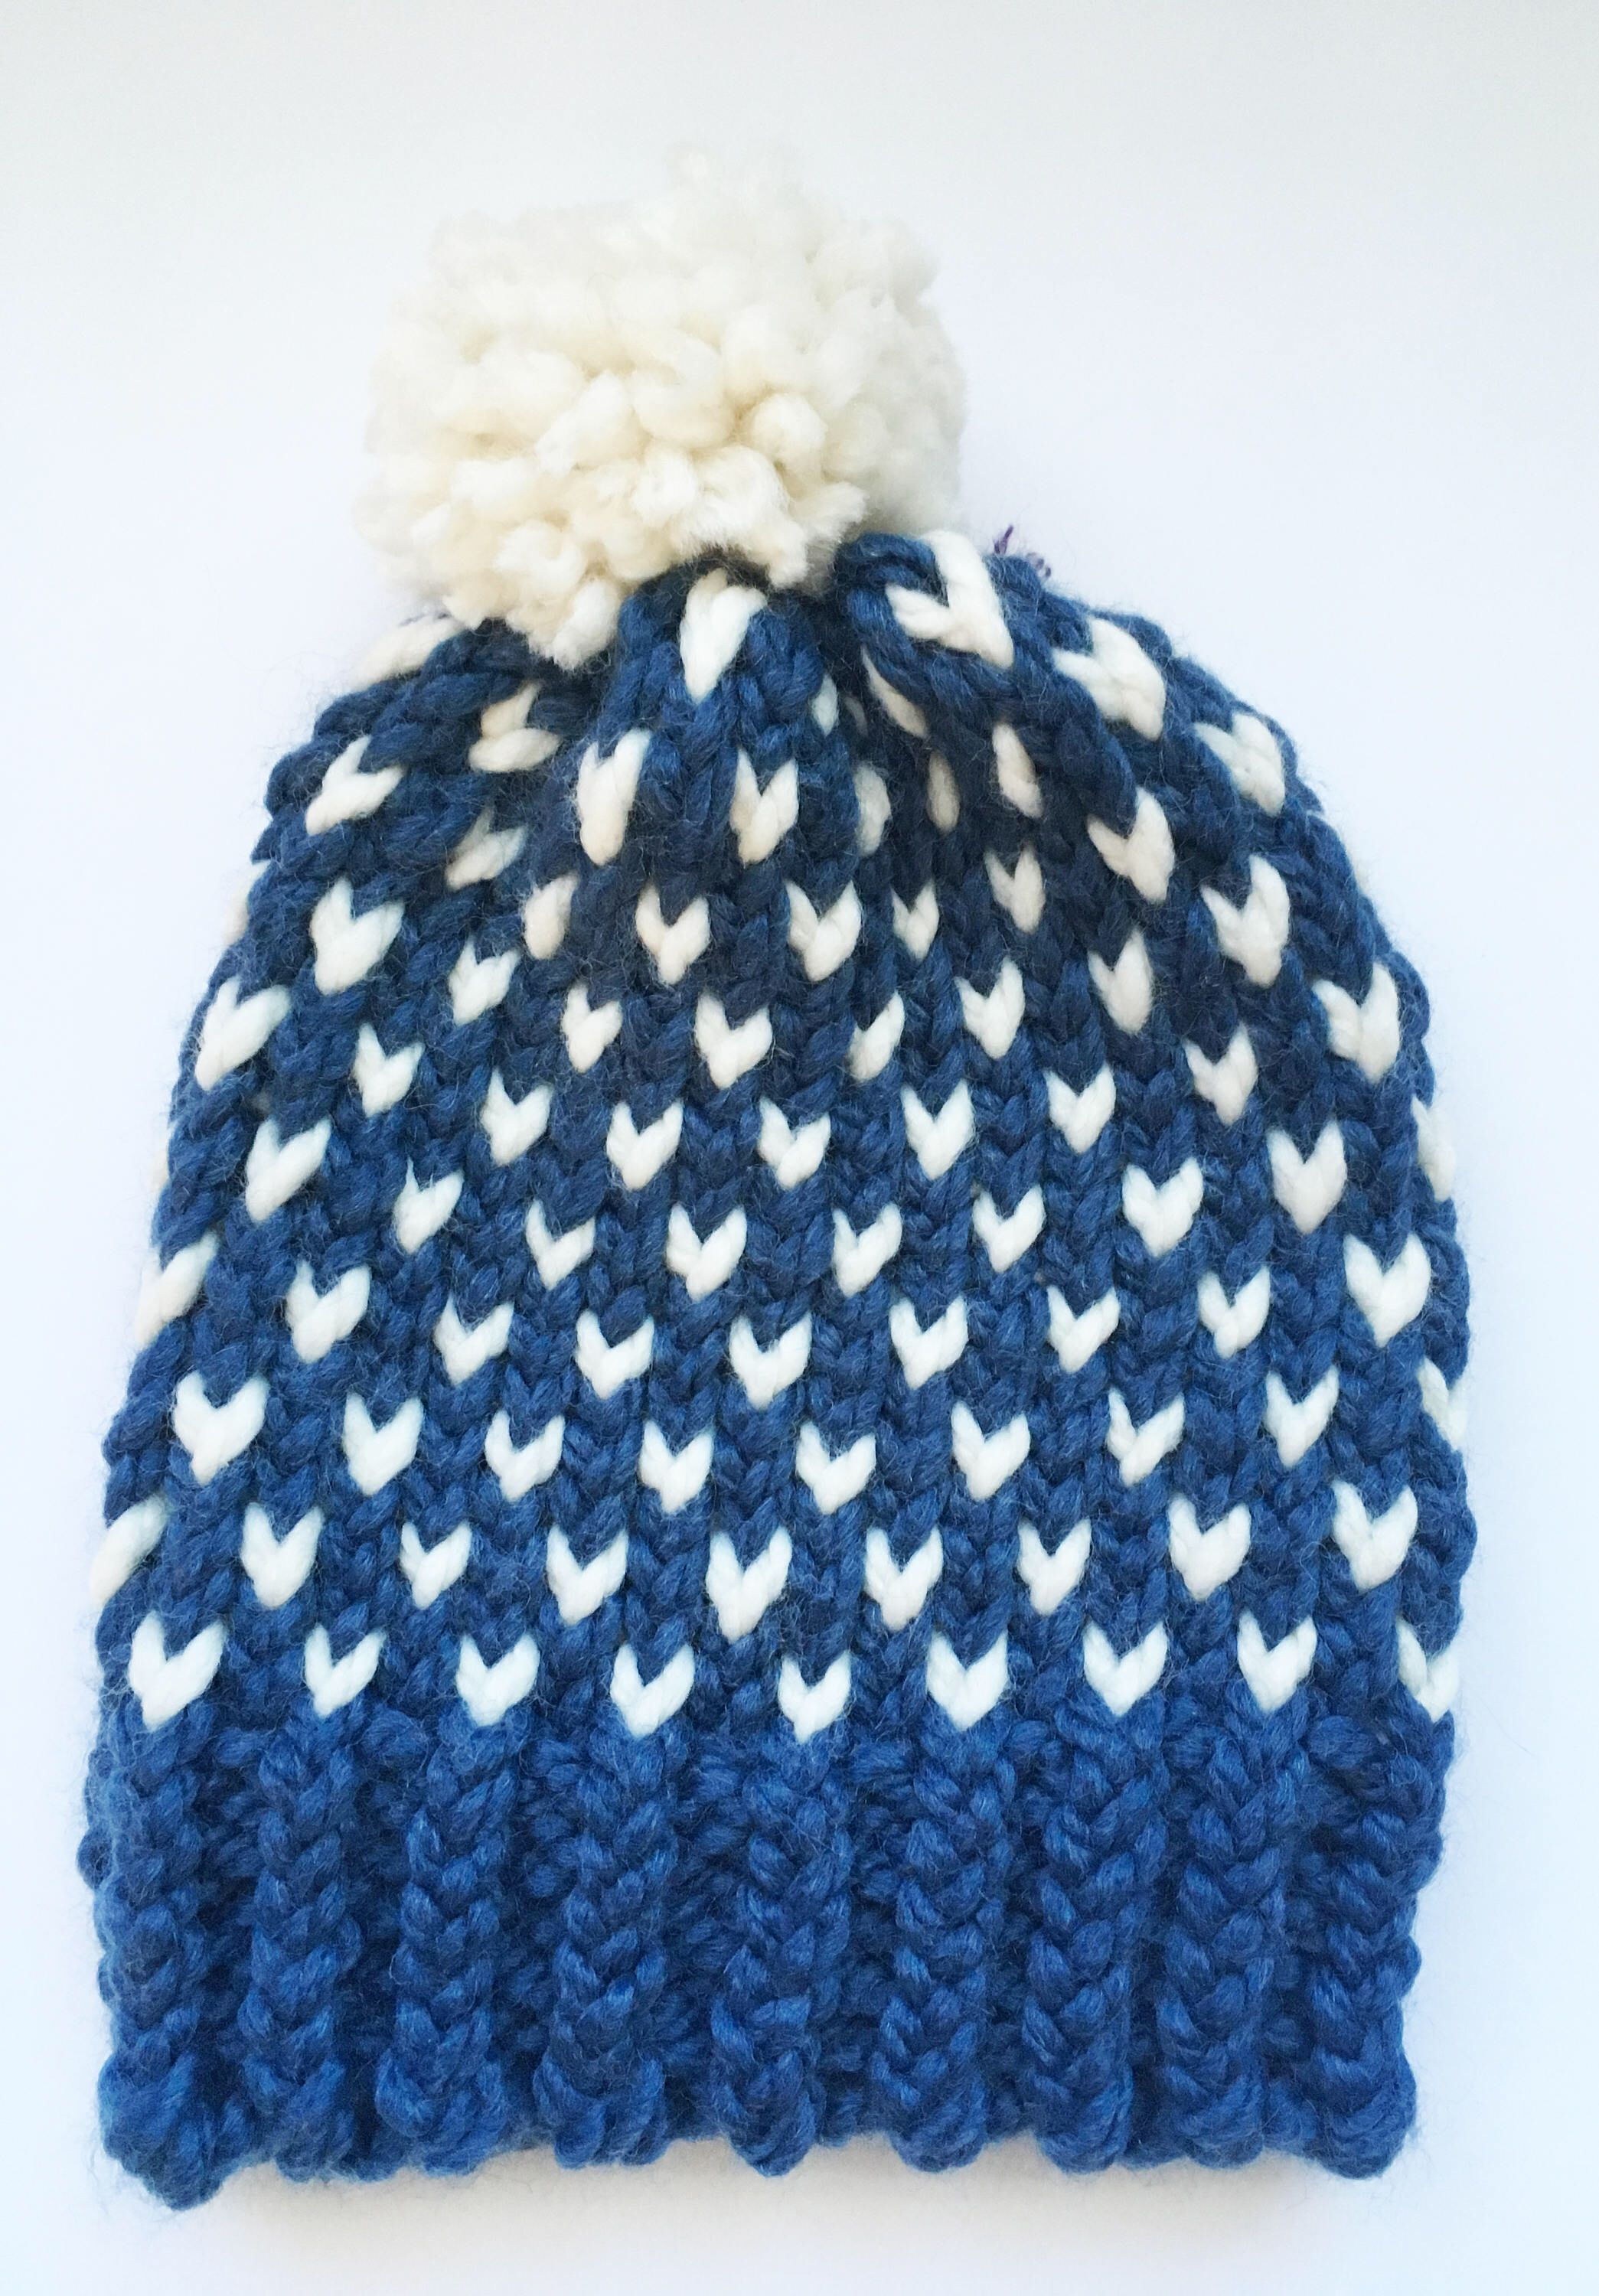 b211a436f8a Women s Blue and White Heart Hat